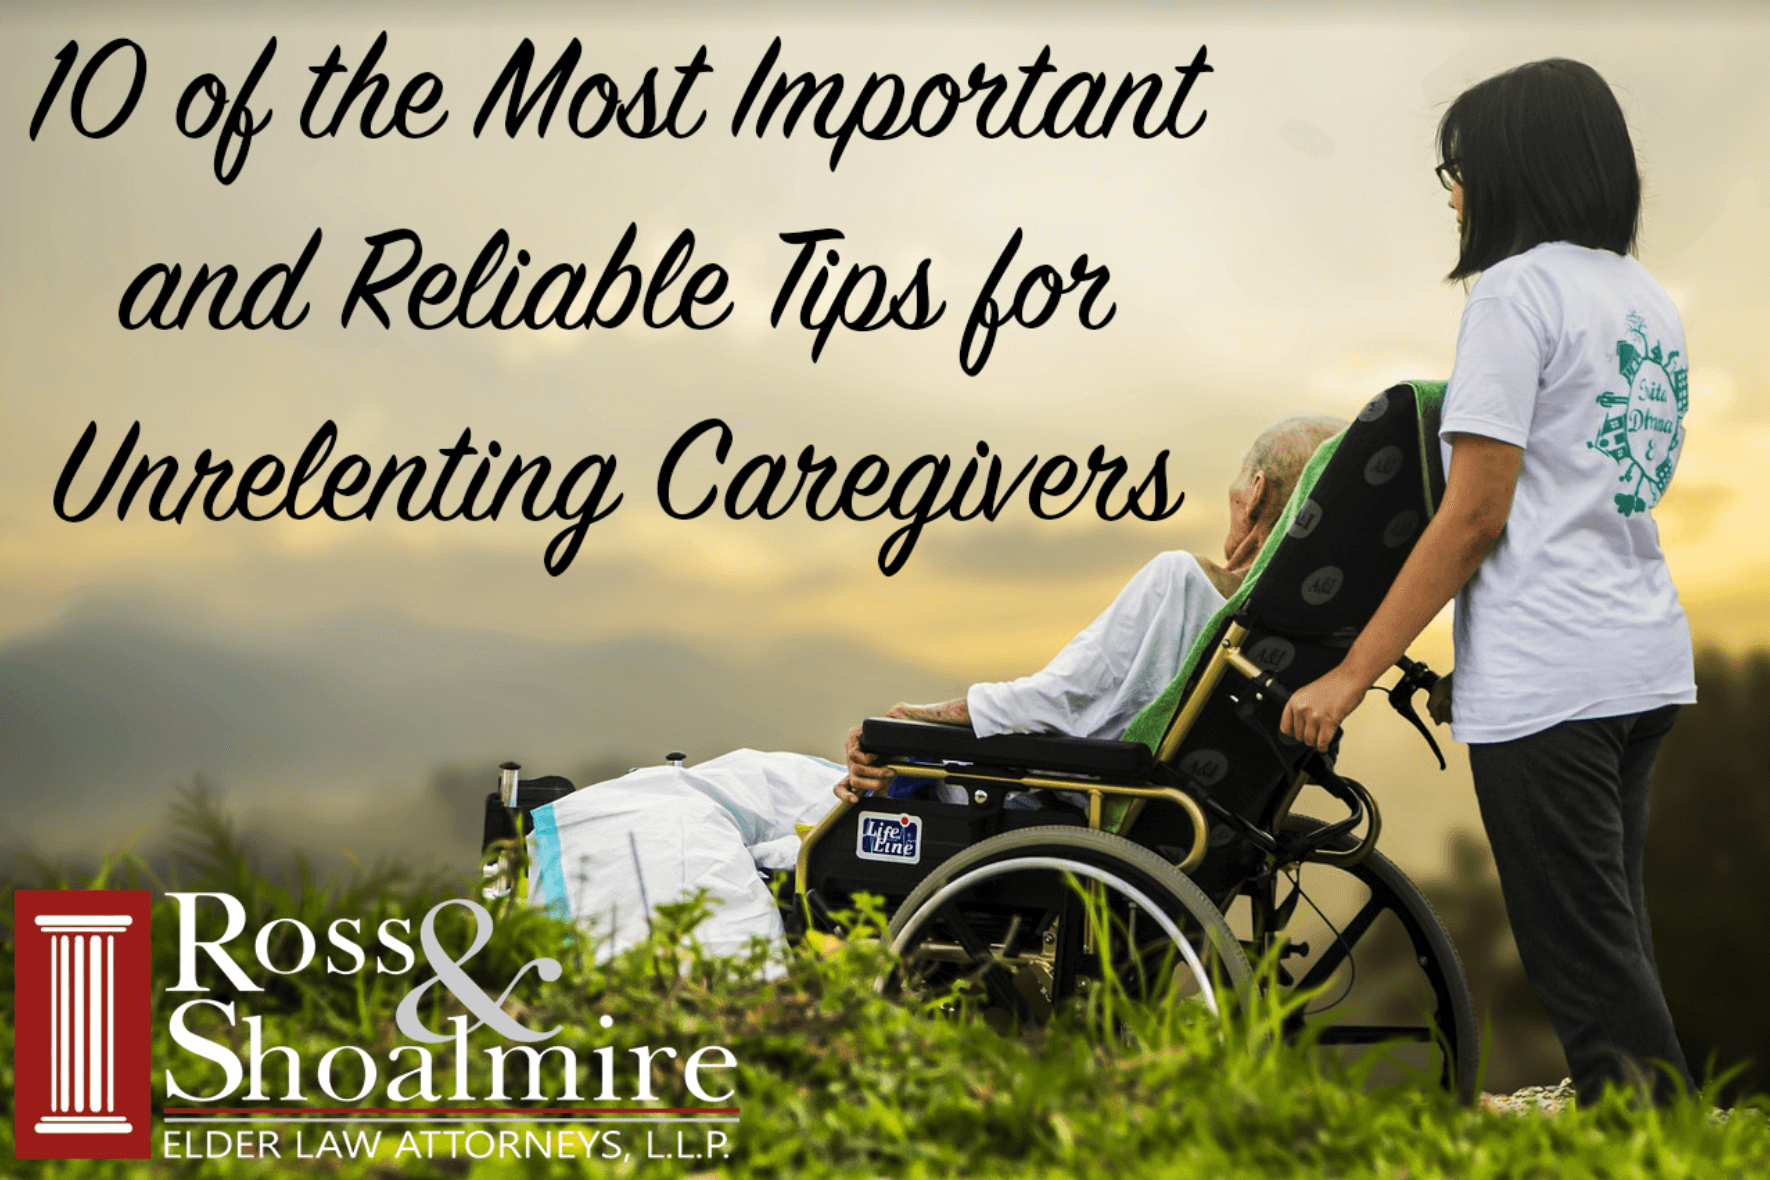 10-most-important-reliable-tips-unrelenting-caregivers